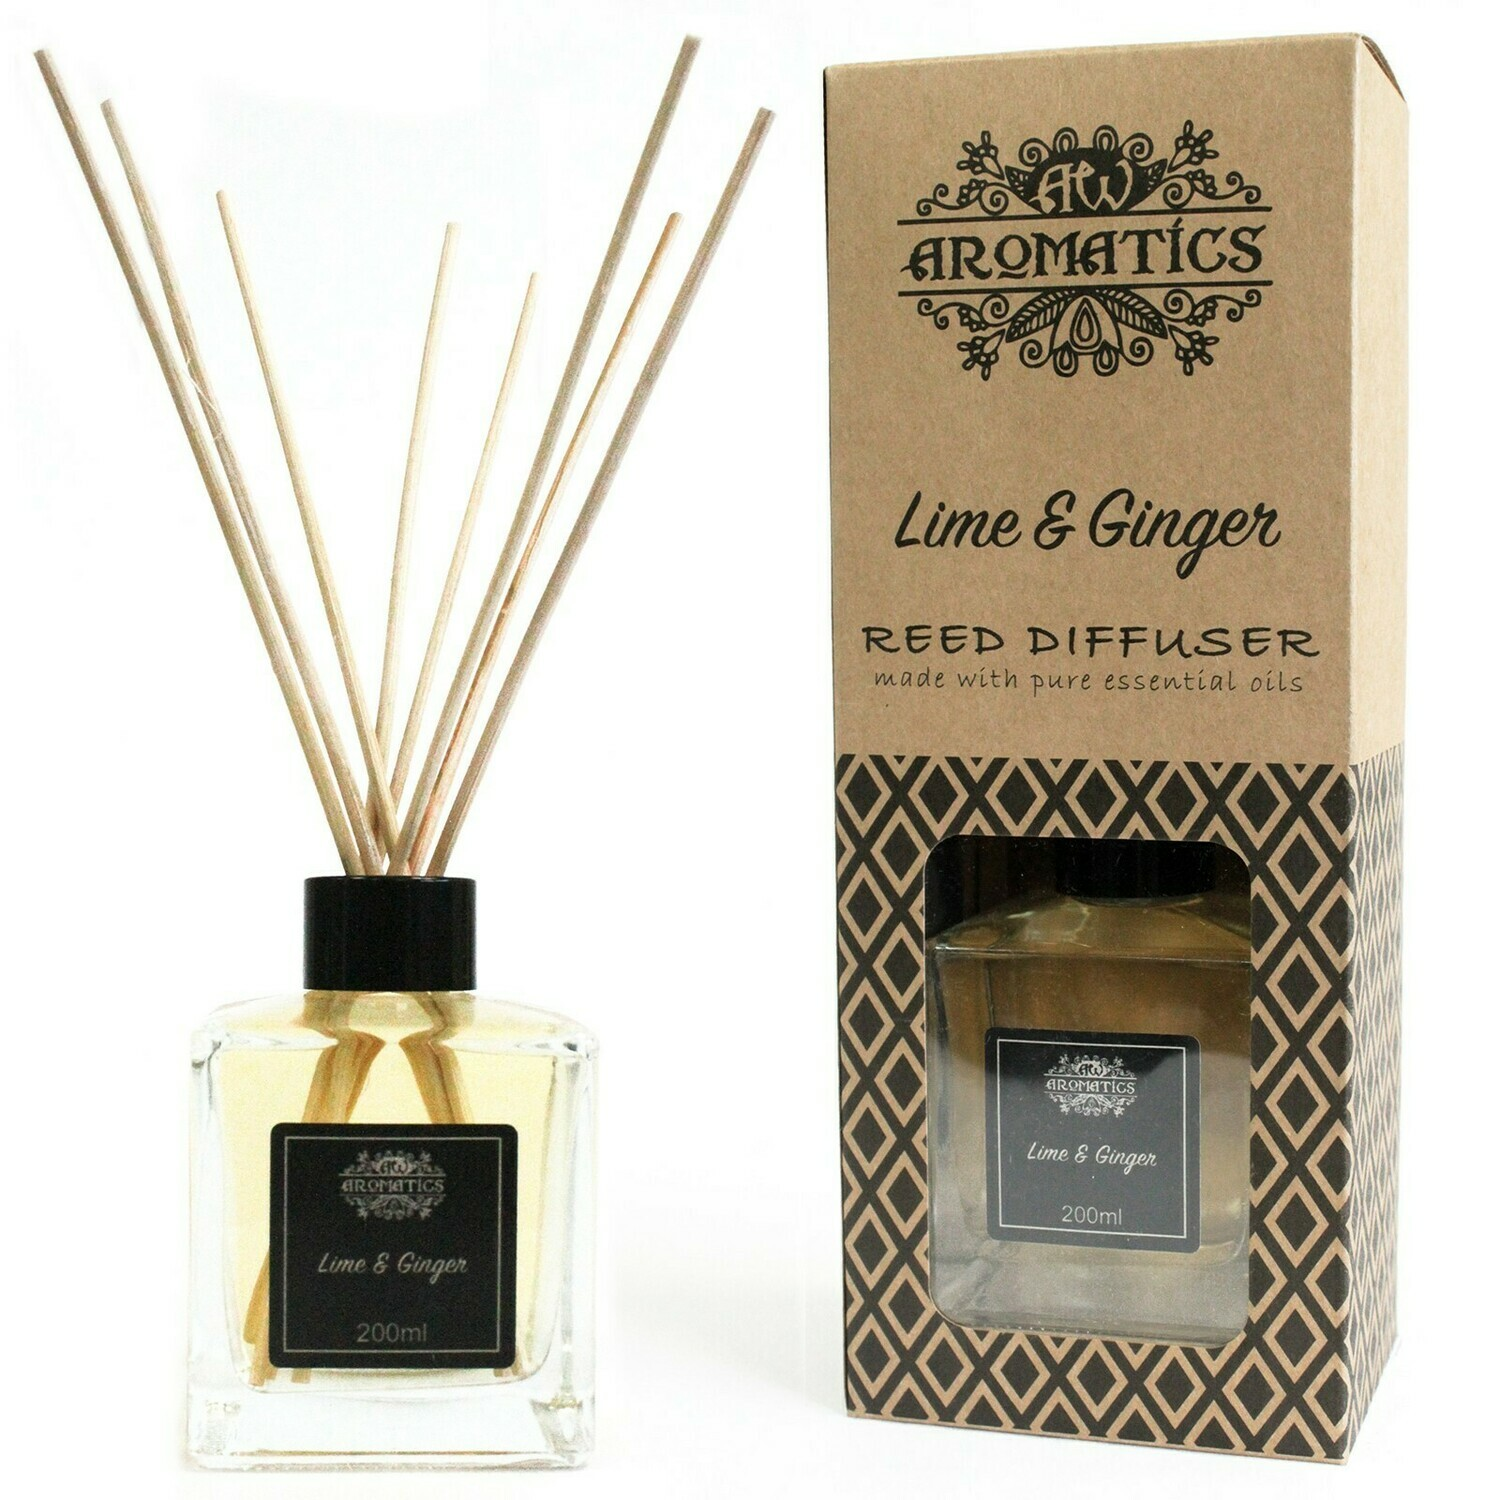 Lime & Ginger Essential Oil Reed Diffuser 200 ml